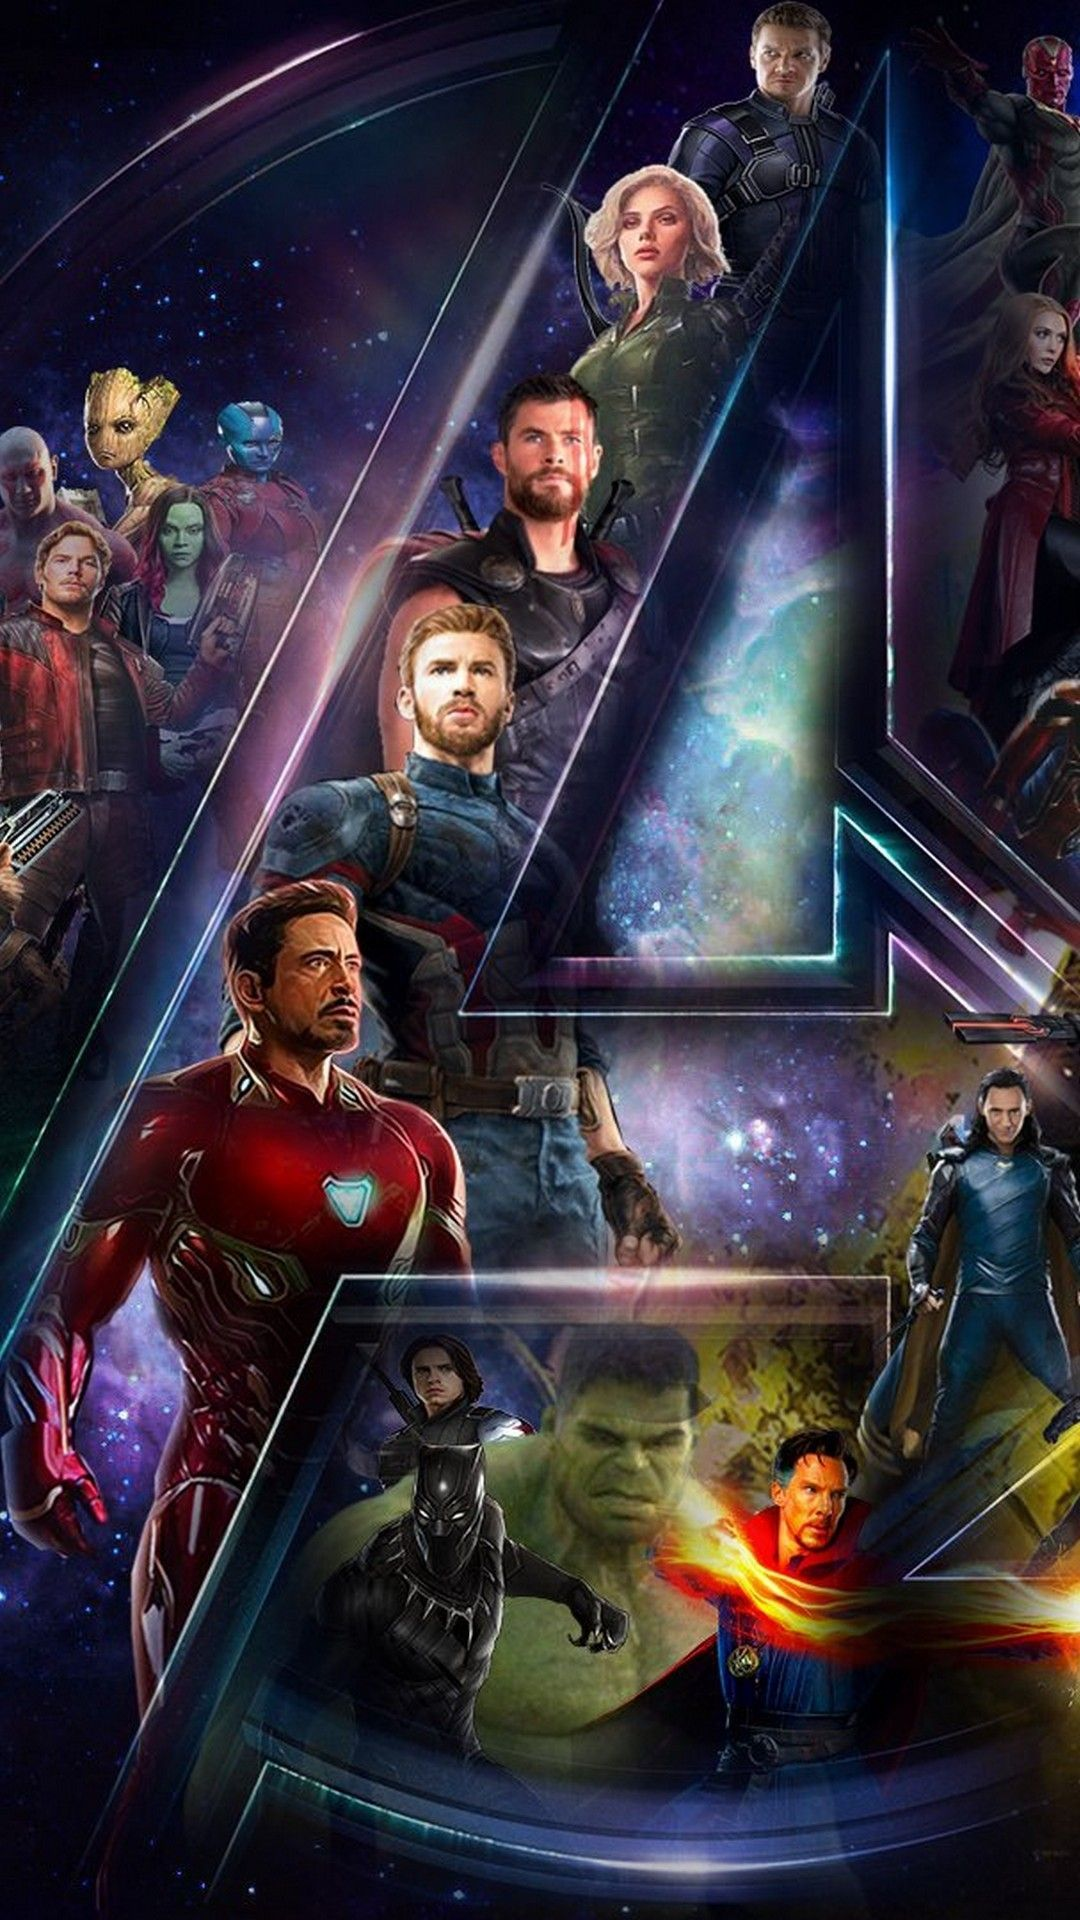 Best 2019 Avengers Endgame Wallpaper 81462 Wallpaper